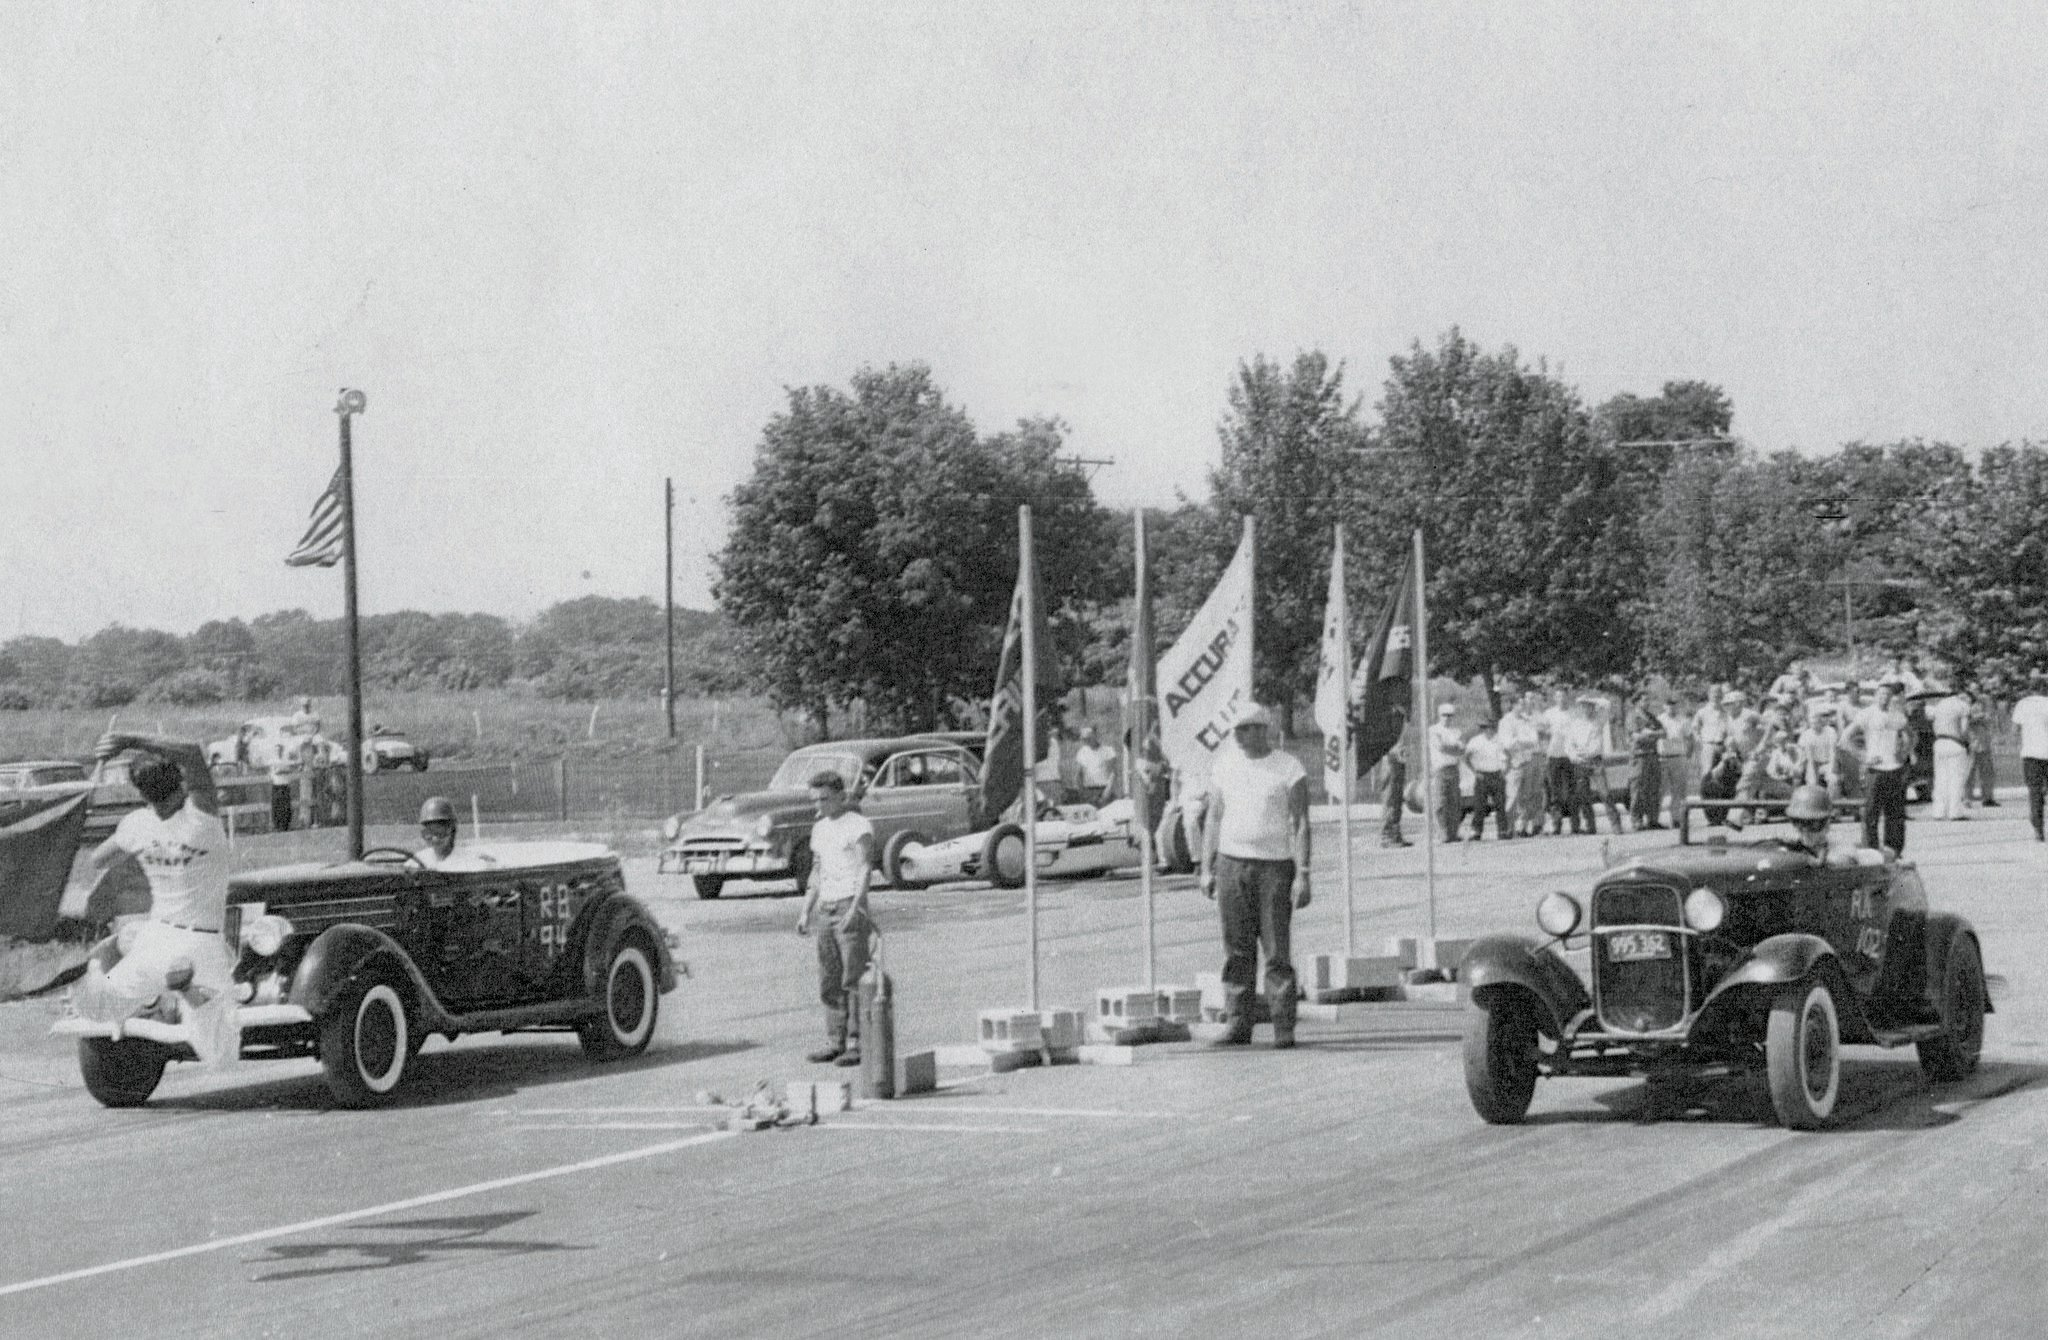 Chicagoan Chris Karamesines in his 1936 Ford Phaeton goes up against another topless competitor at the new dragstrip in Half Day, Illinois, in 1952.